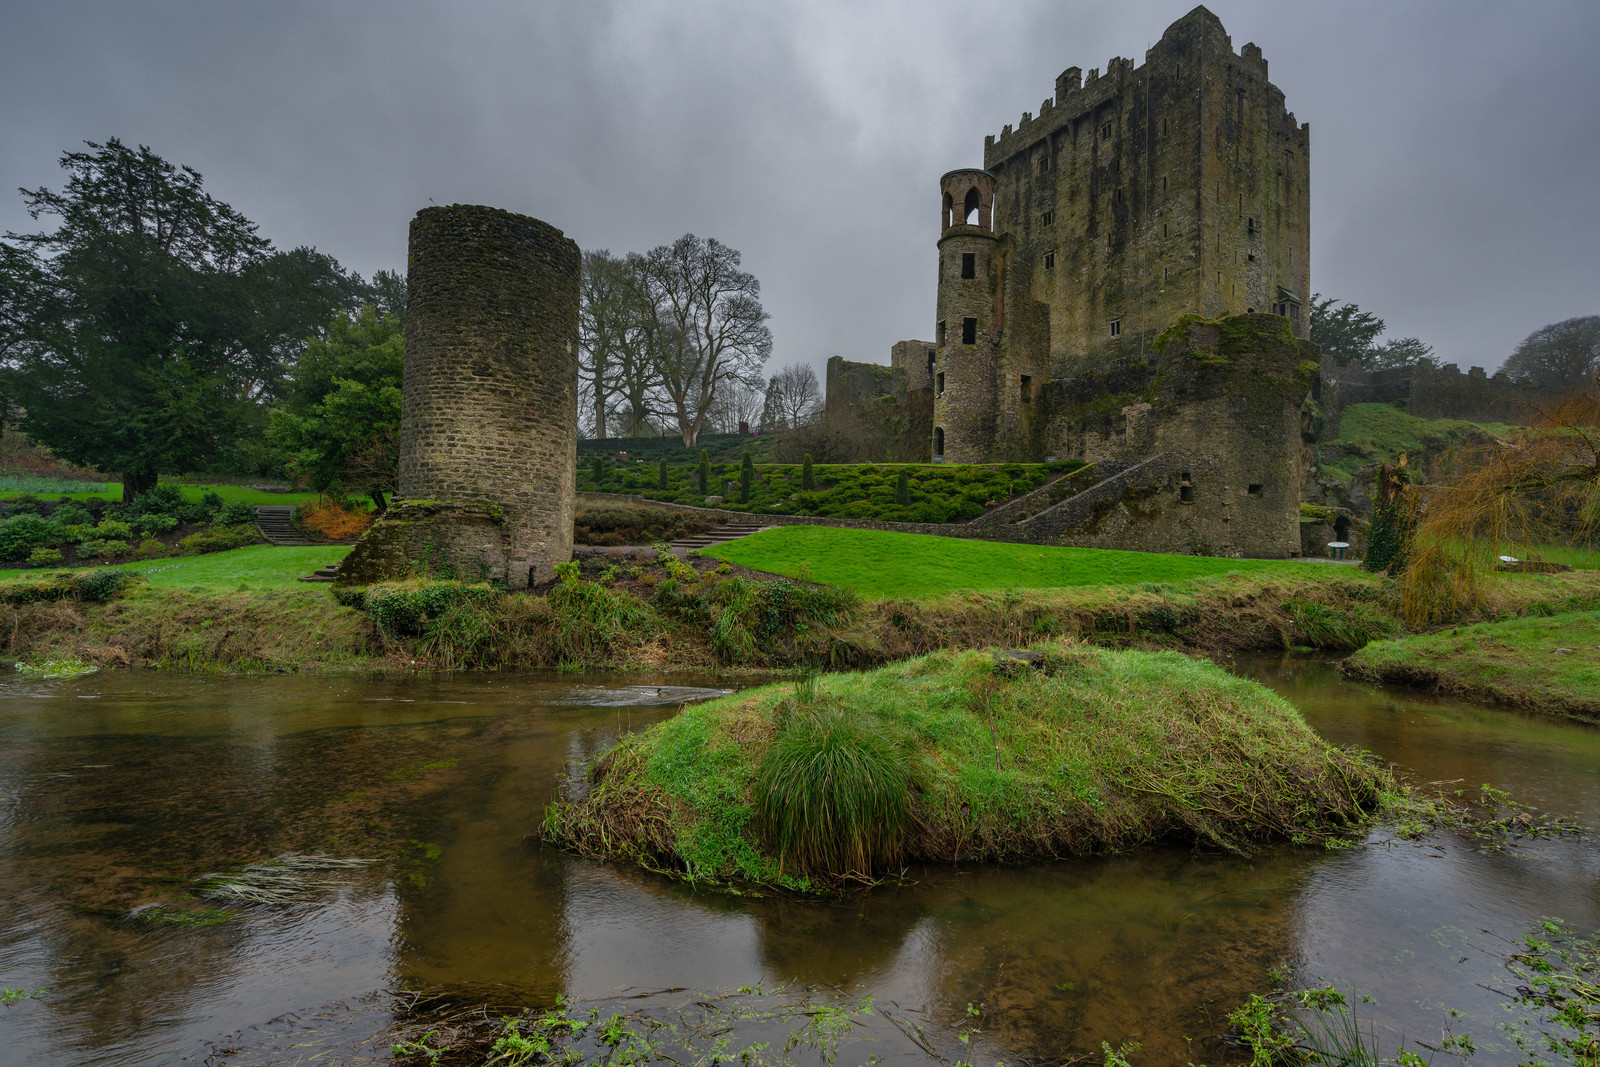 The Blarney Castle in Ireland